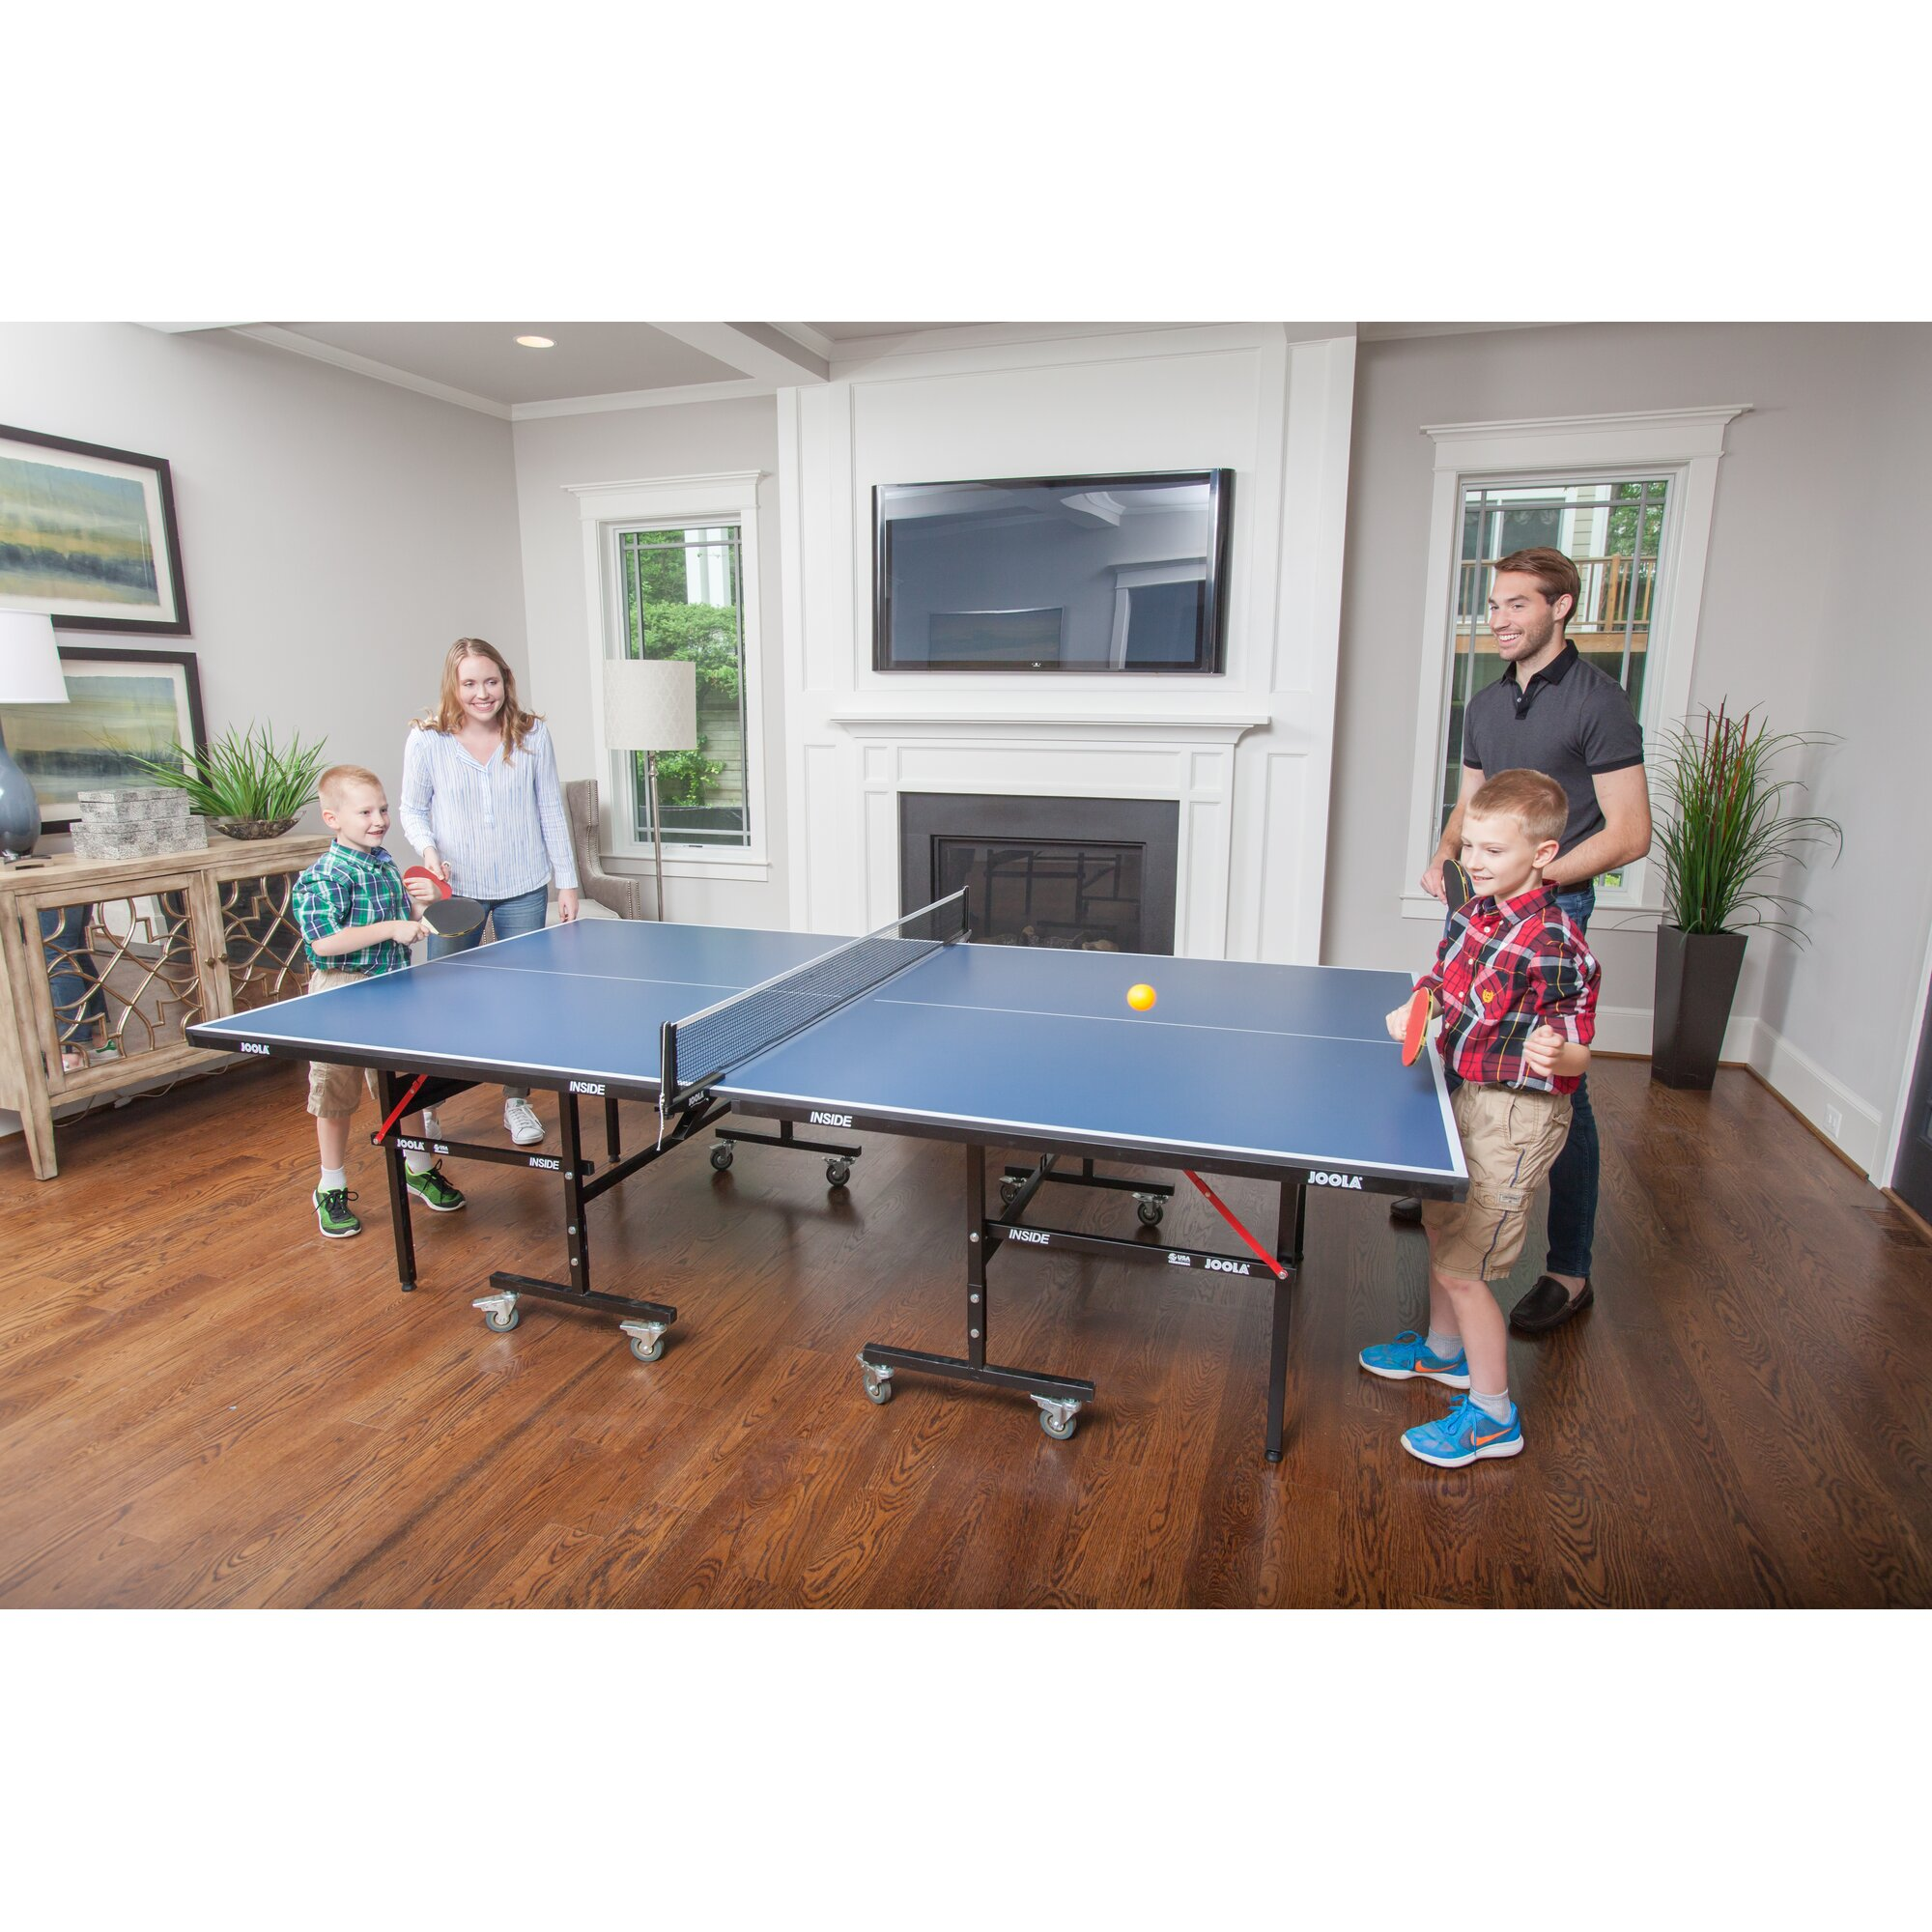 Table Ever Player Best Best Table Tennis Tennis OXiTPkuwZ